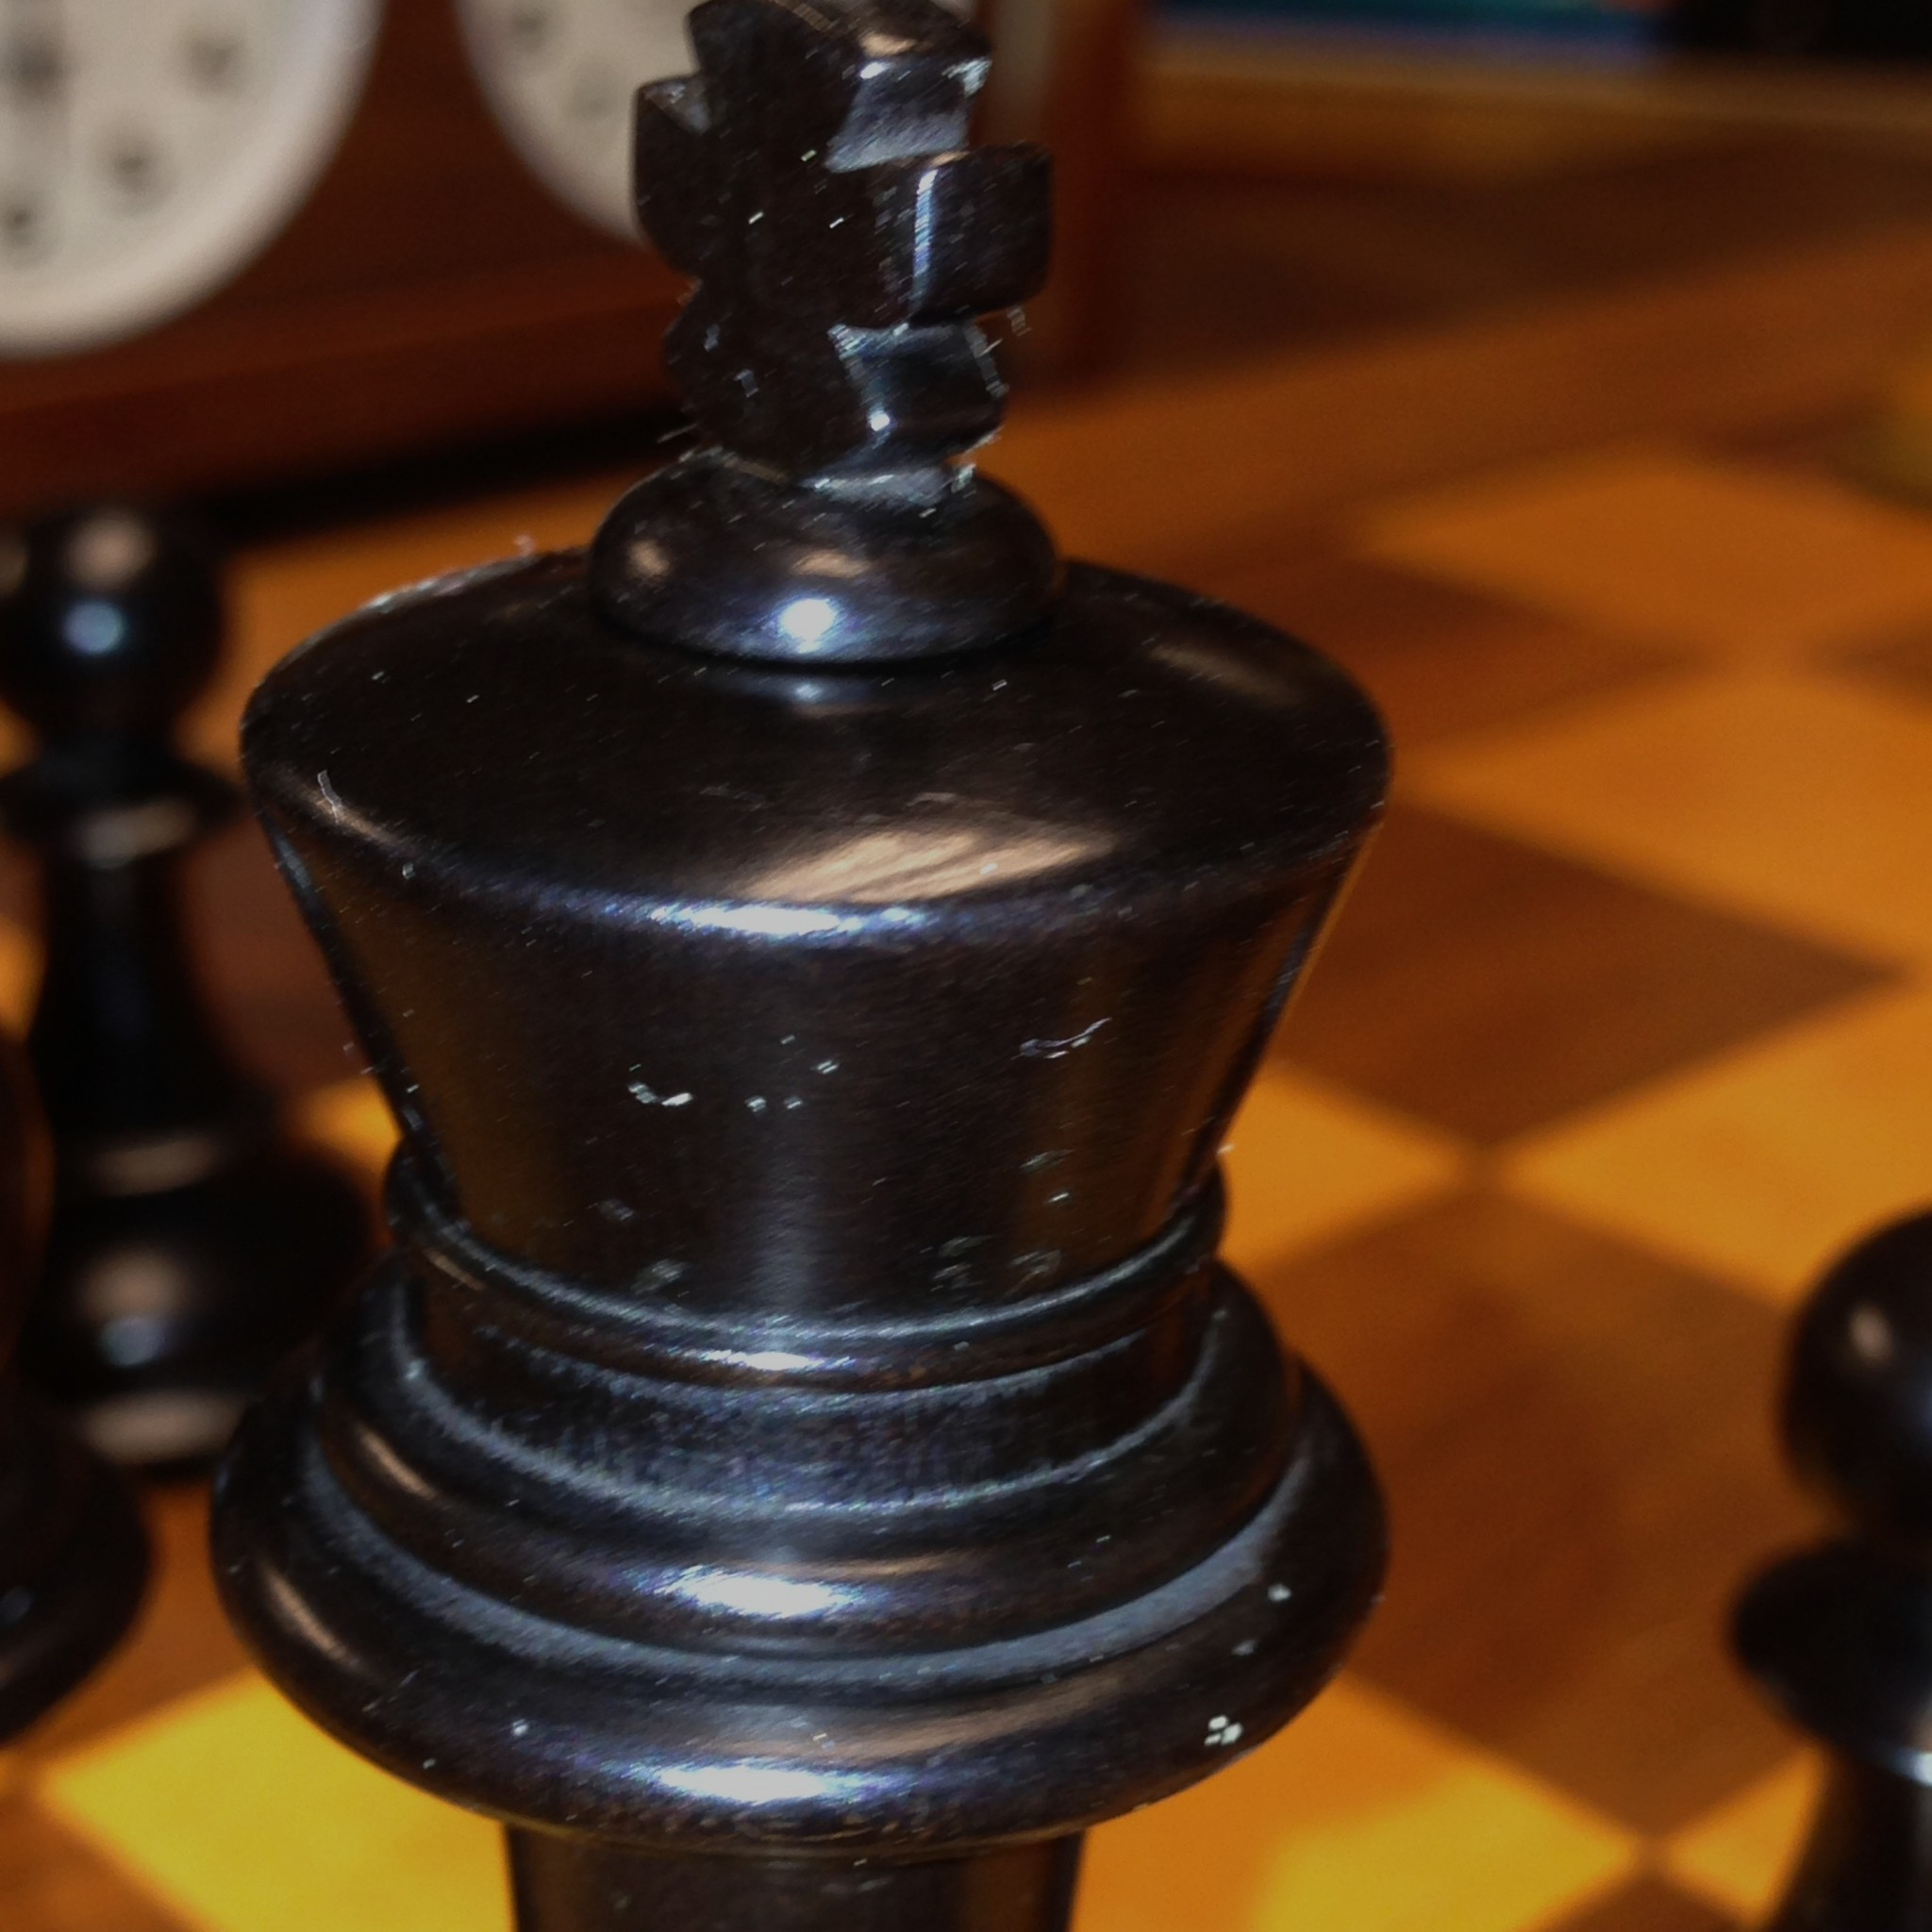 House of Staunton British Chess Company Reproduction: A Photo Review ...